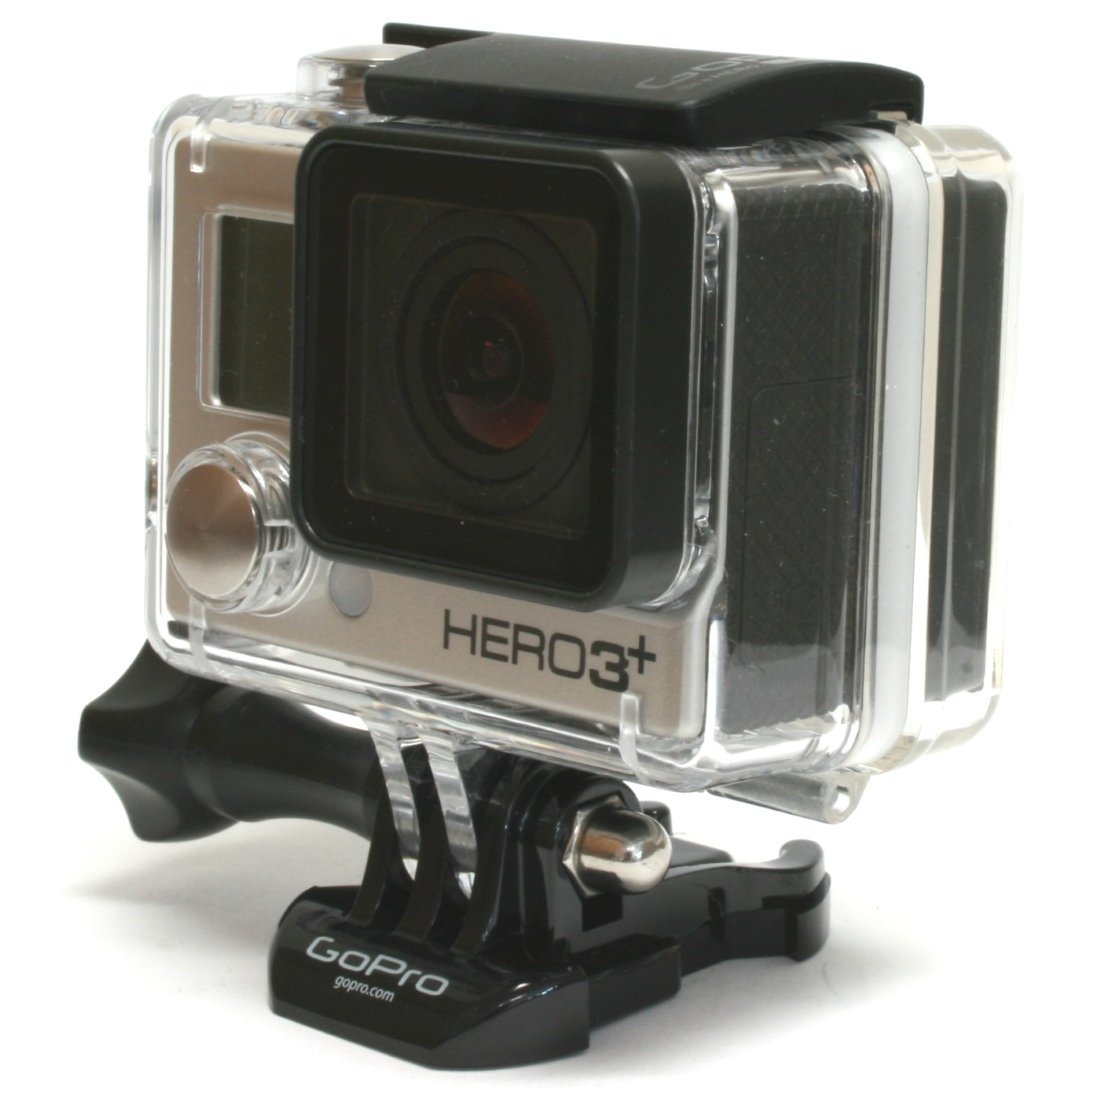 Wasabi Power Extended Battery compatible with GoPro HERO4, HERO3+, HERO3